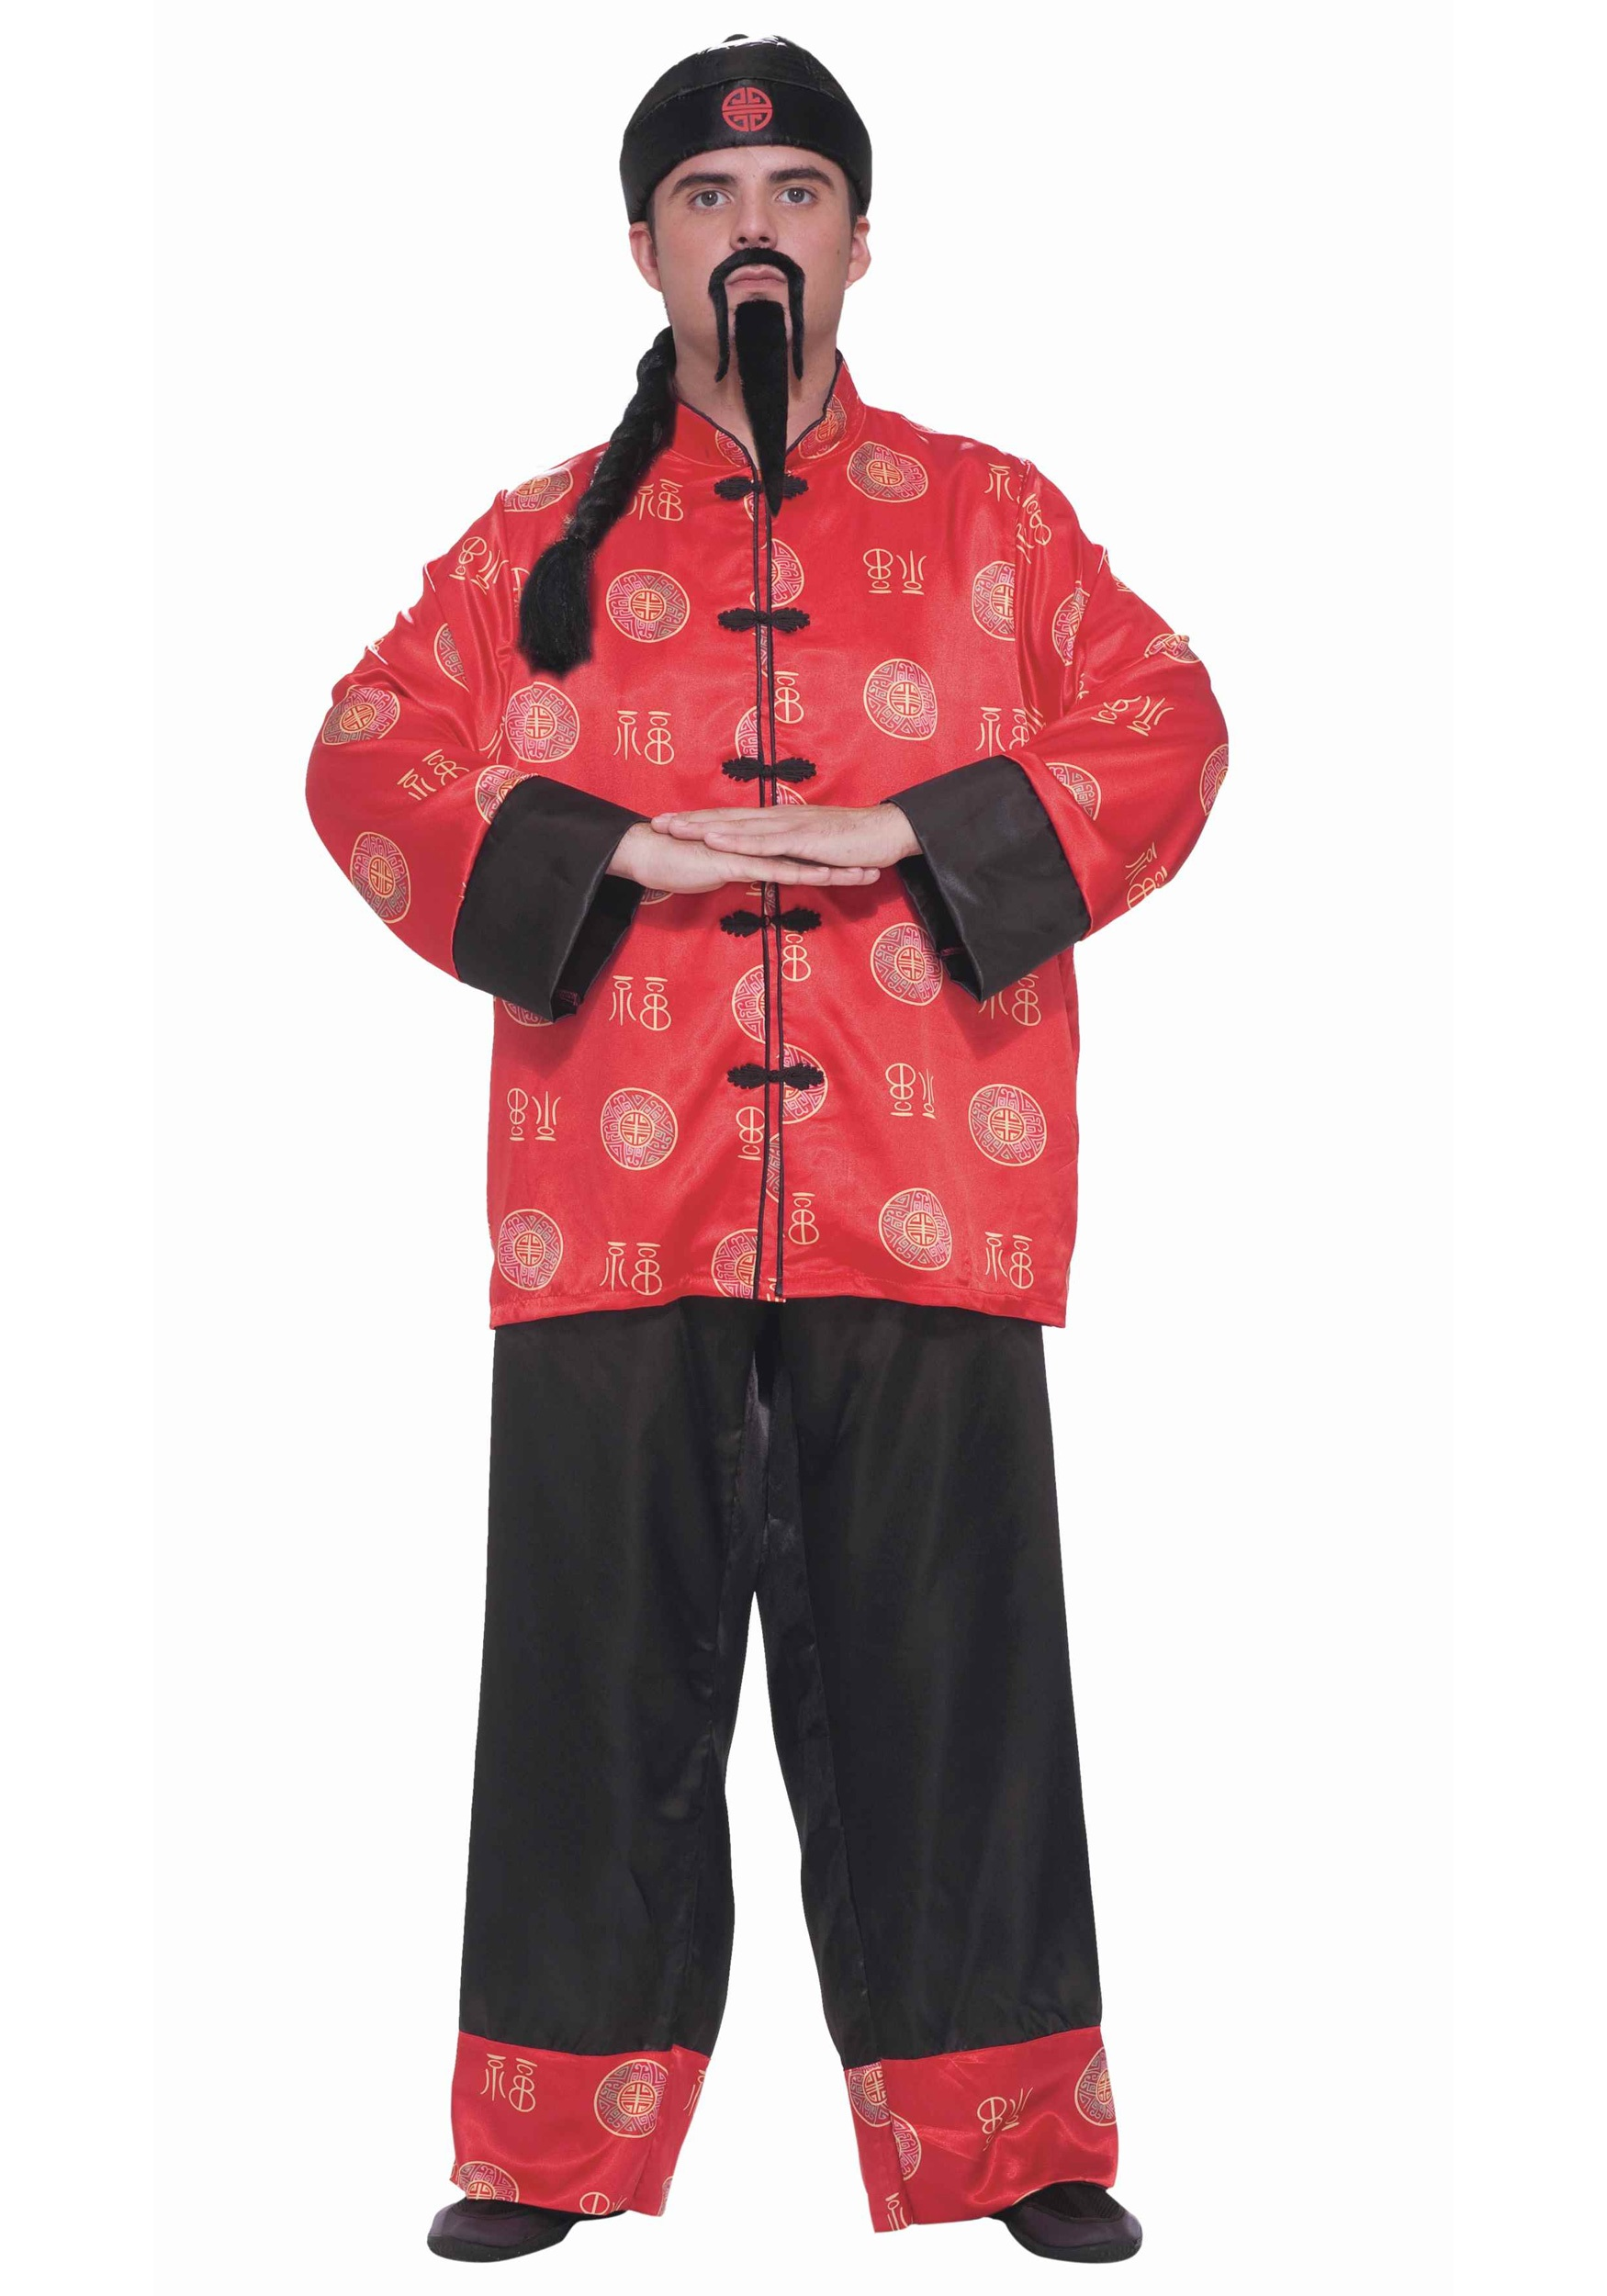 Cheap halloween costume ideas for women sexy halloween costume ideas sexy halloween costume ideas on halloween costume ideas ninja costumes adult chinese gentleman costume solutioingenieria Image collections